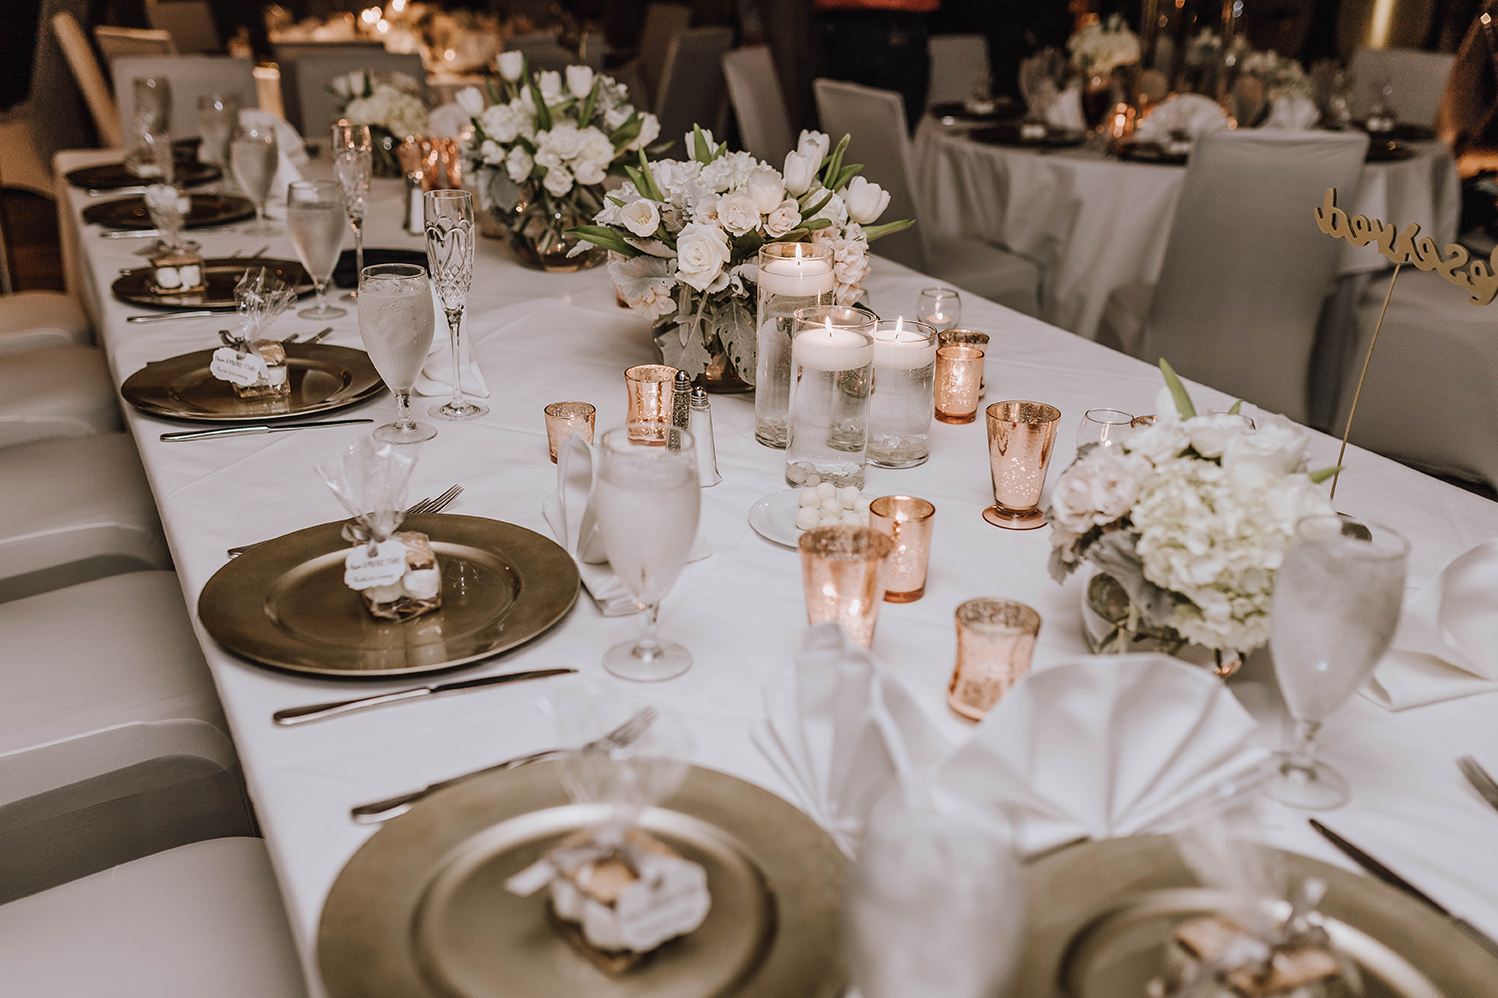 houston wedding, tablescape, place setting, white, copper, gray, reception, decor